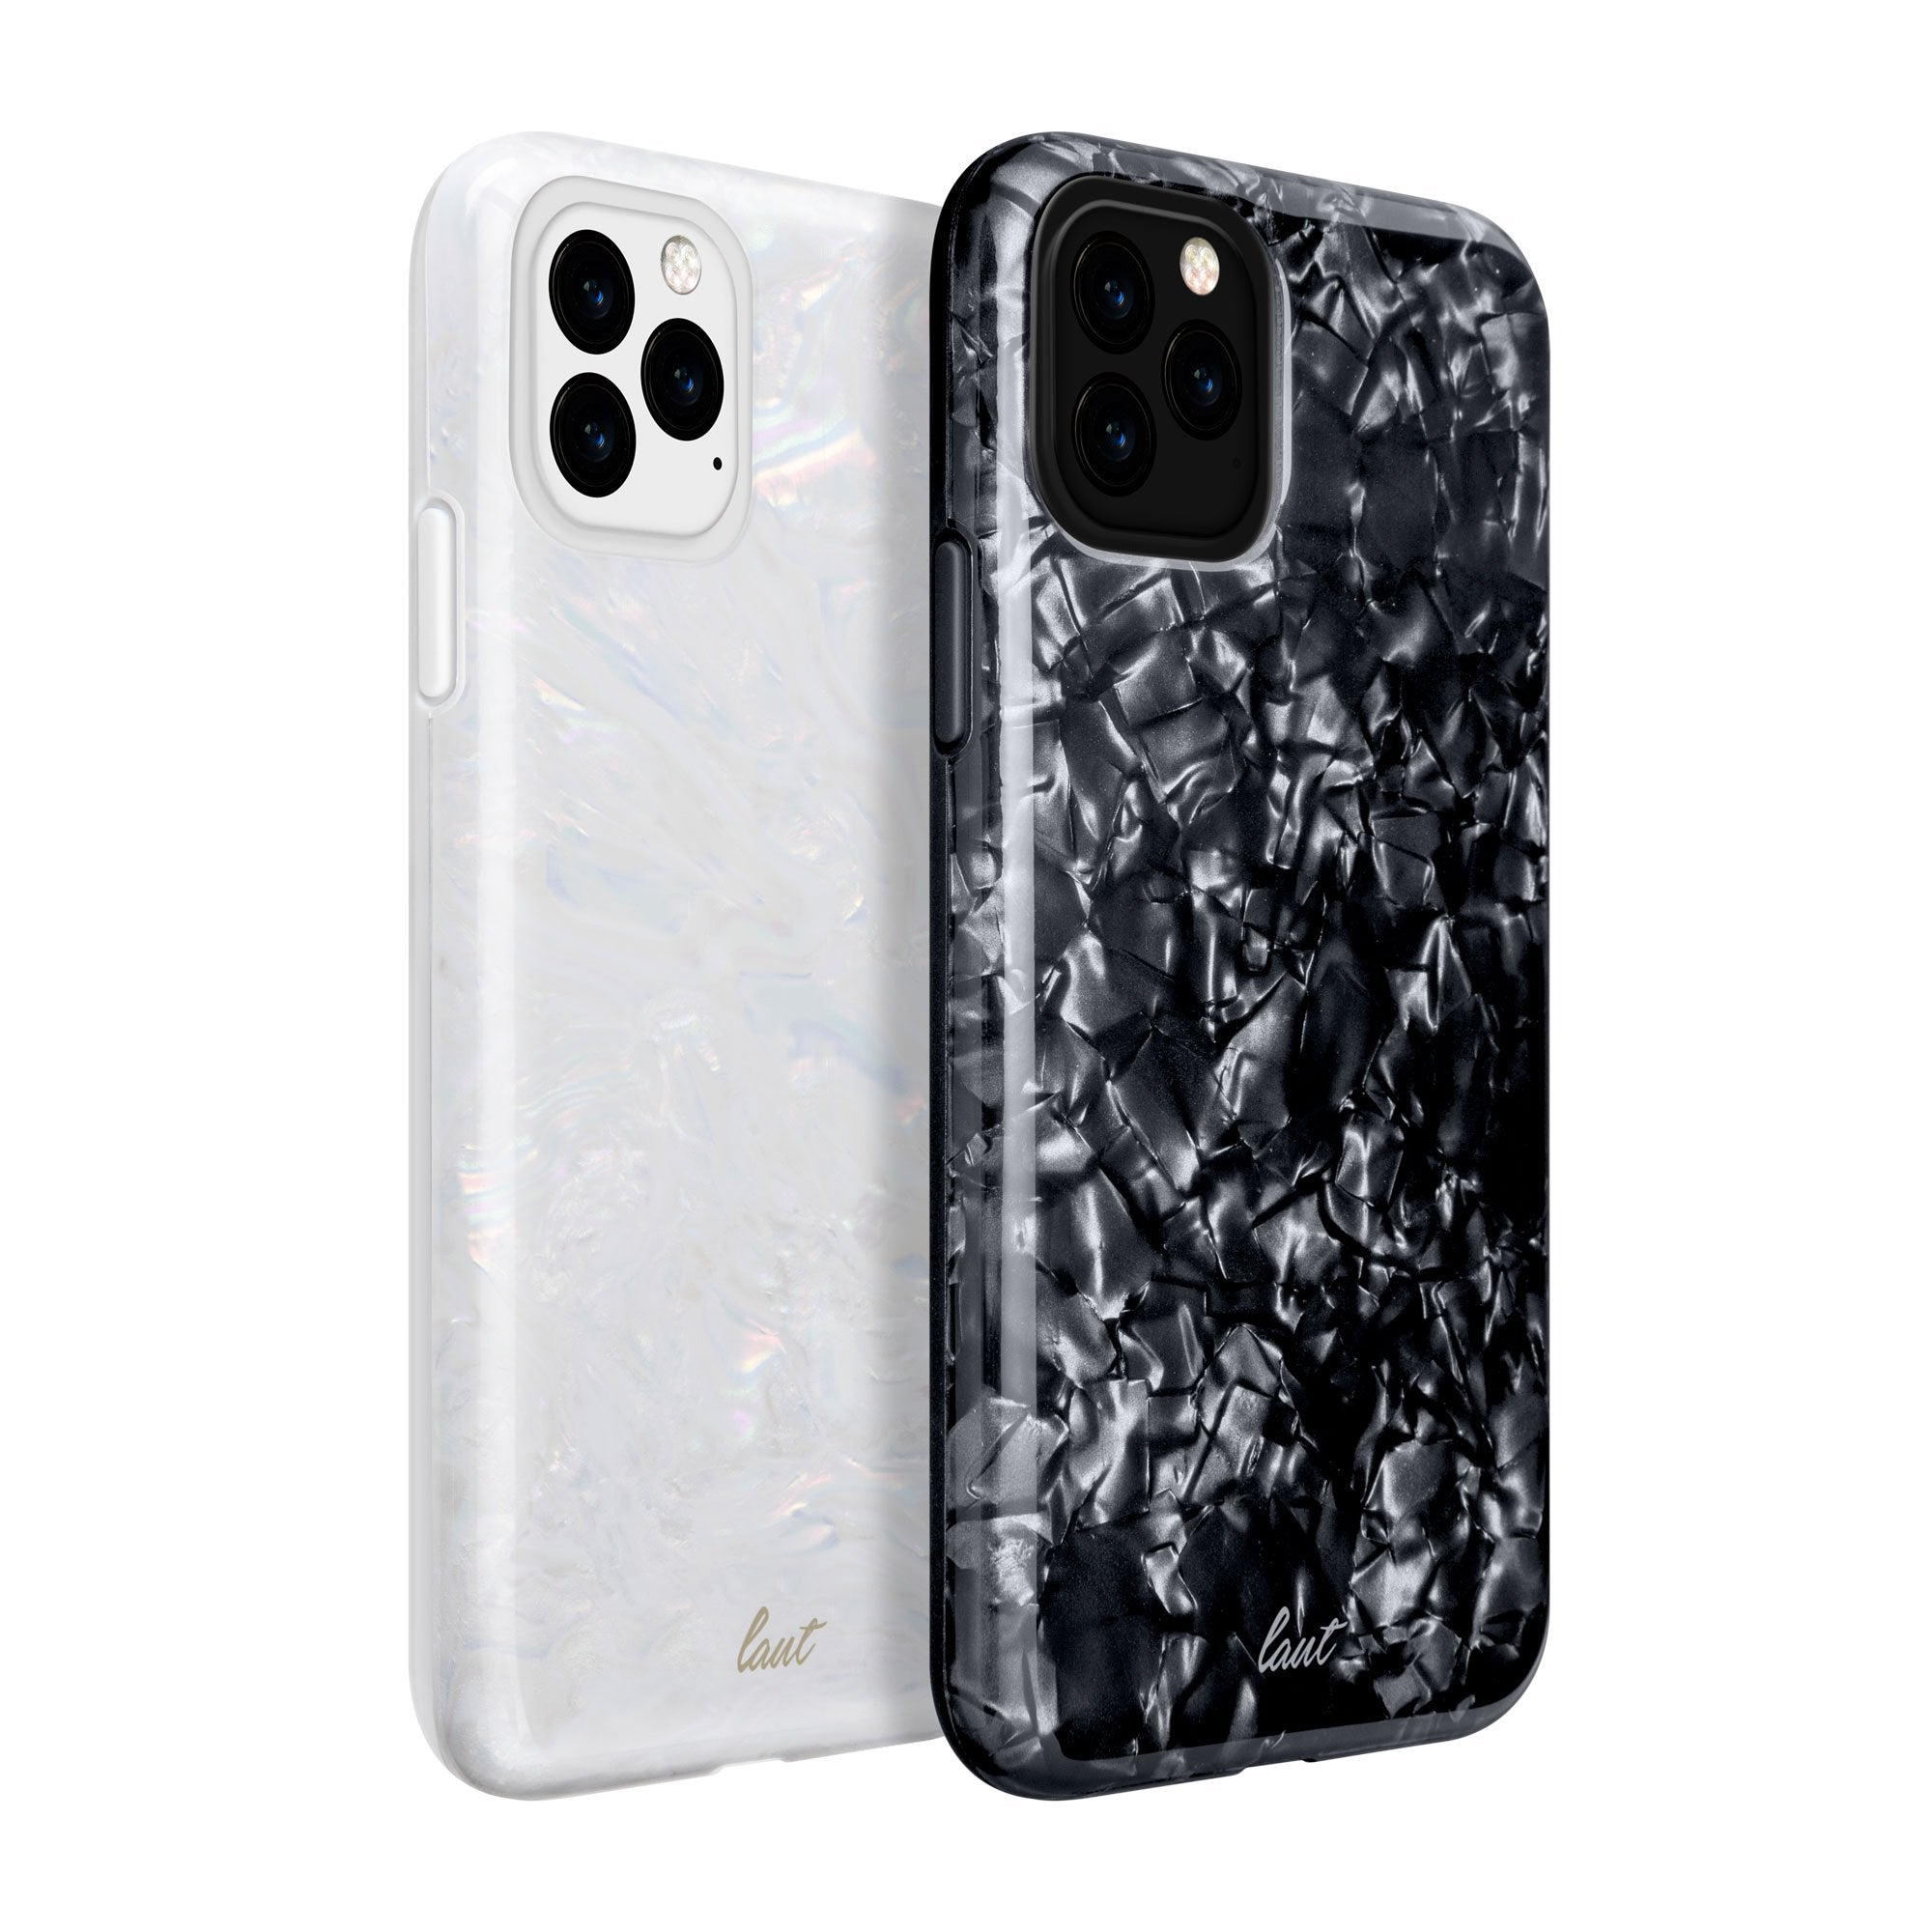 LAUT-PEARL for iPhone 11 Series-Case-iPhone 11 / iPhone 11 Pro / iPhone 11 Pro Max